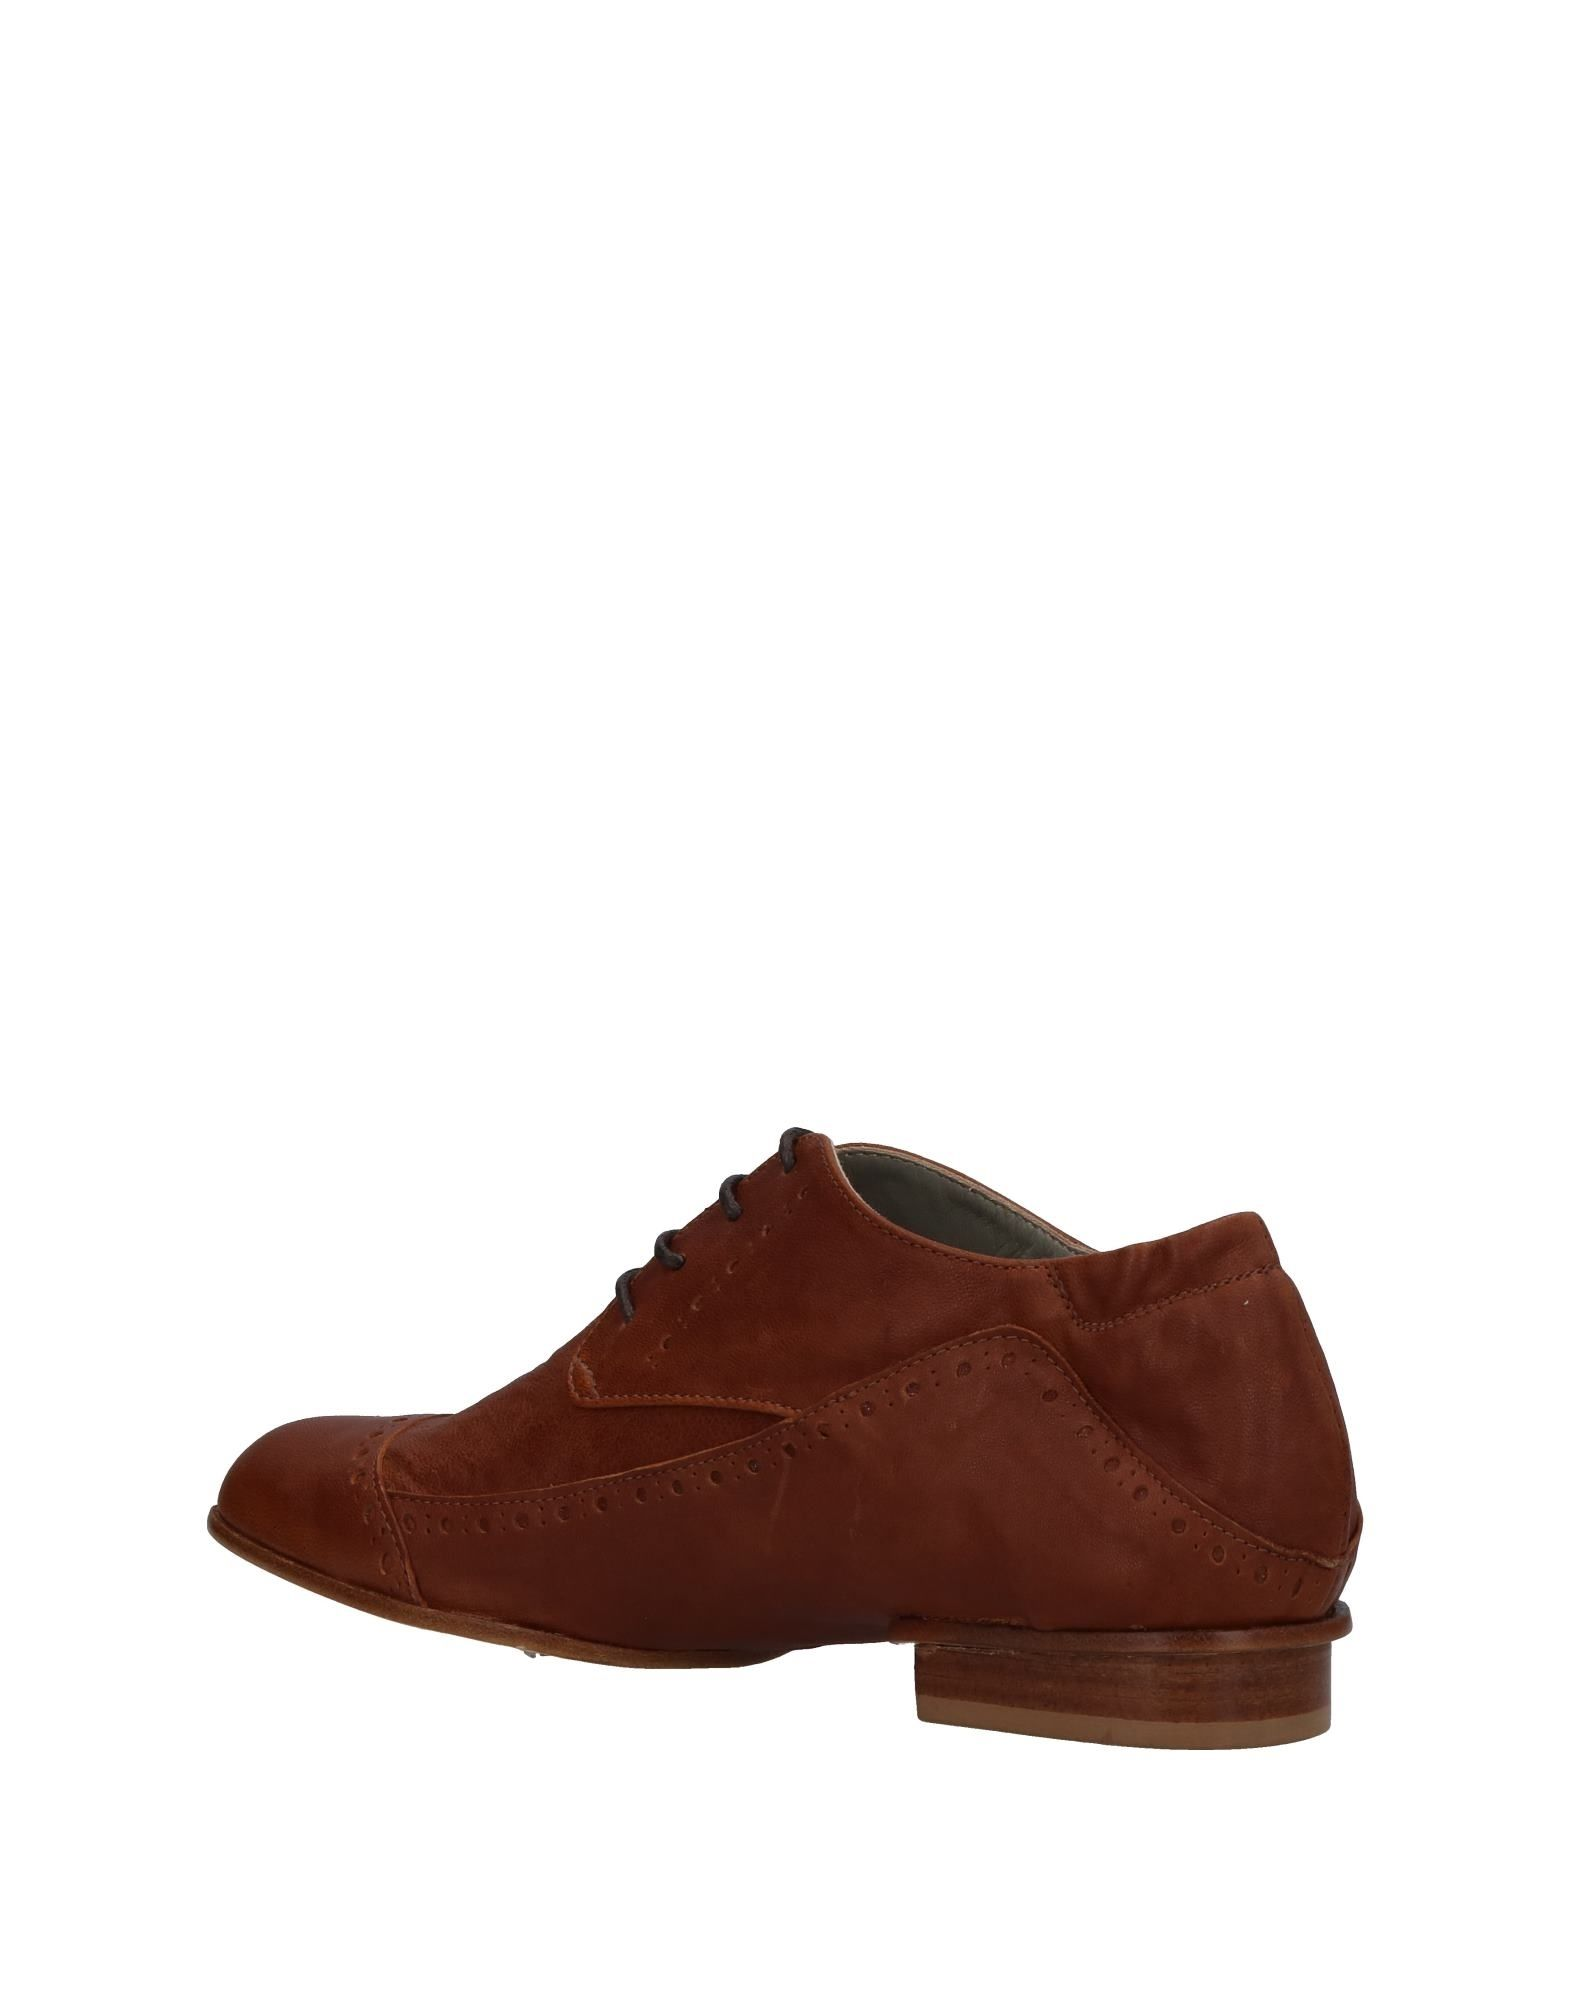 Chaussures - Chaussures À Lacets Ixos r8M2nd6hx